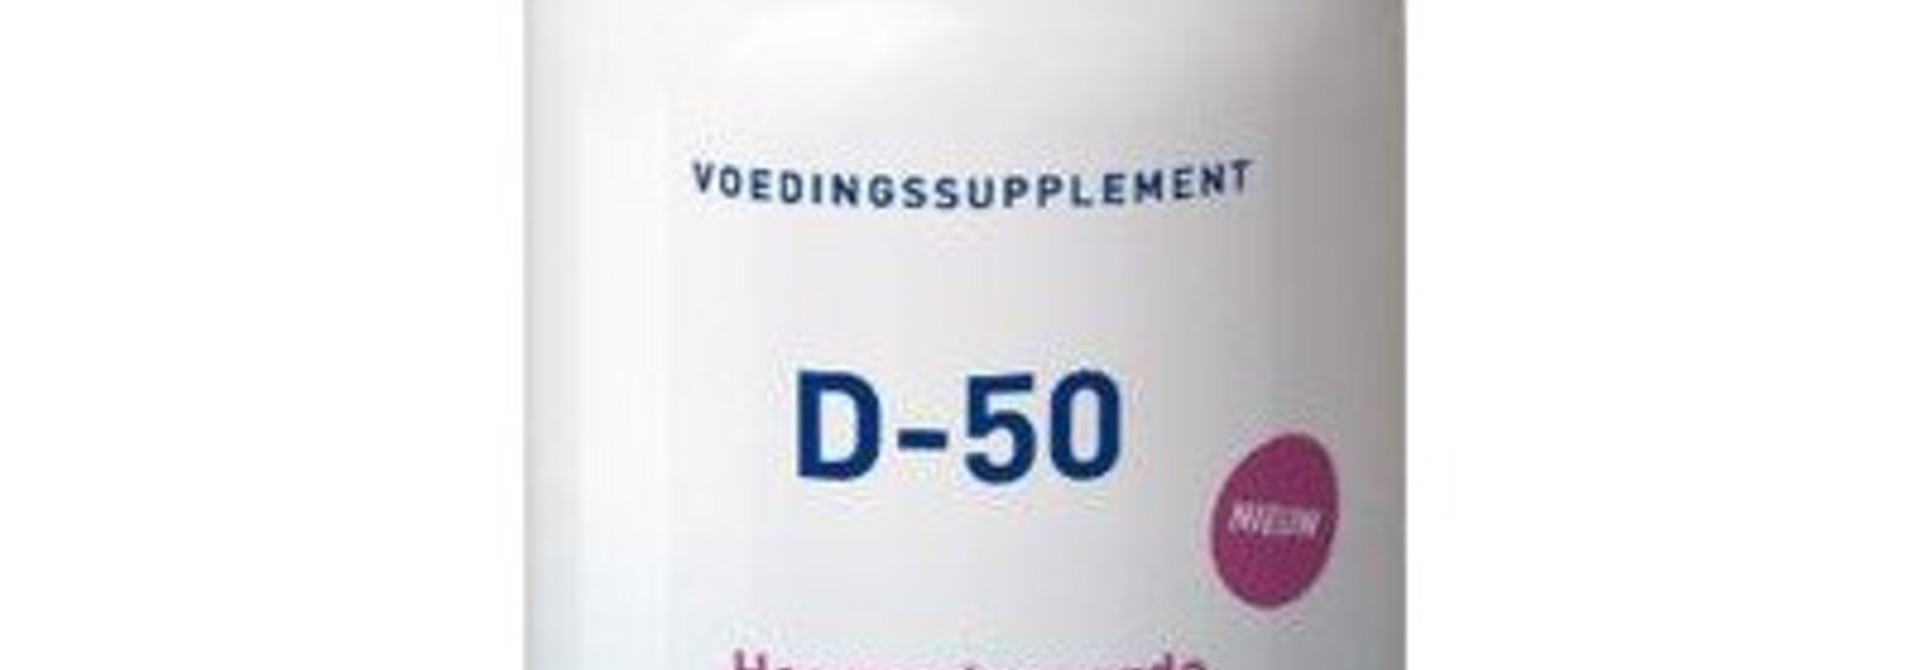 Vitamine D-50 120 tabletten